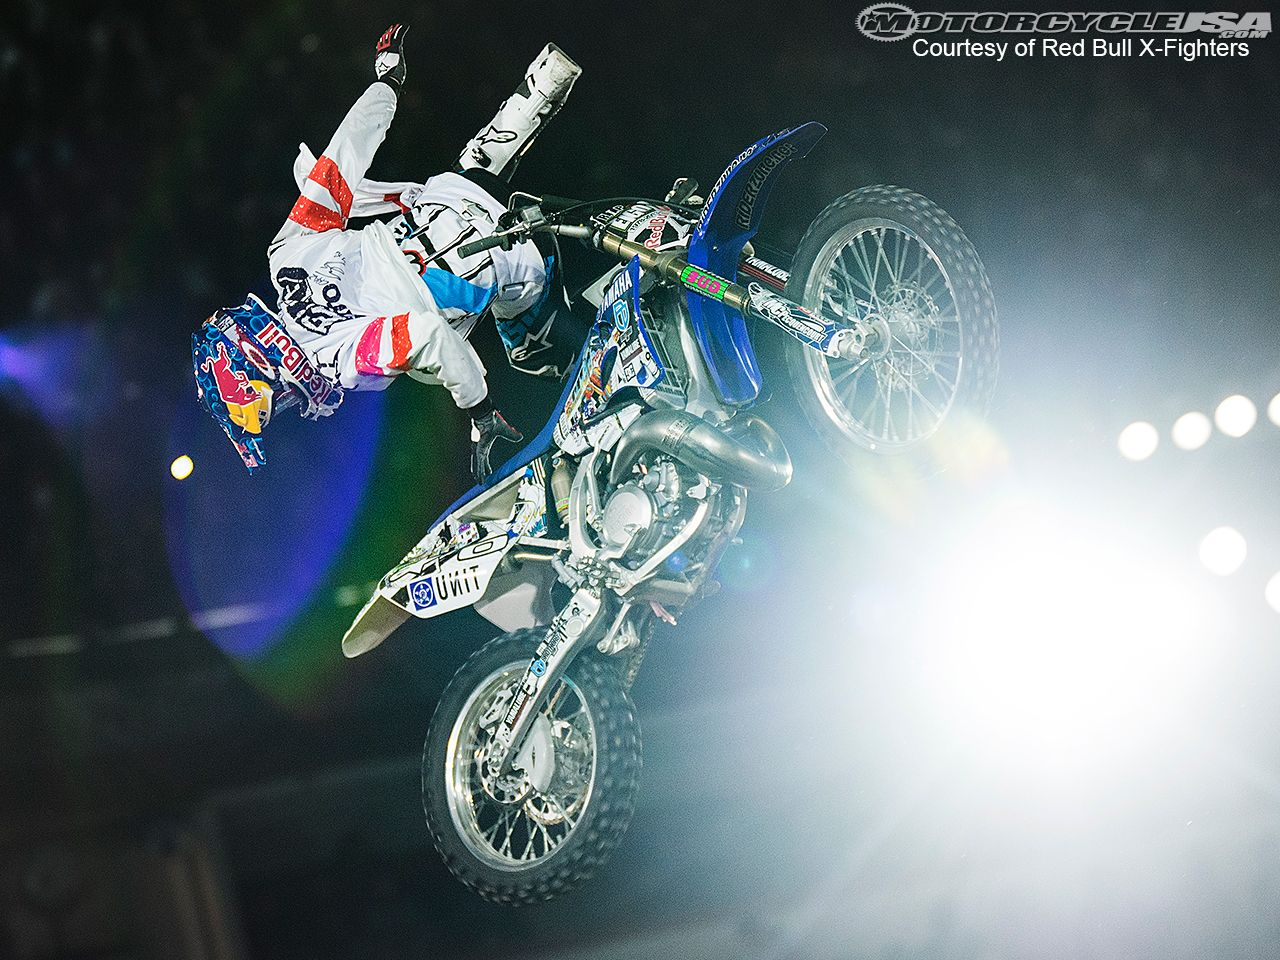 Tom Pages on his way to victory at Red Bull X-Fighters in Mexico City 2013.